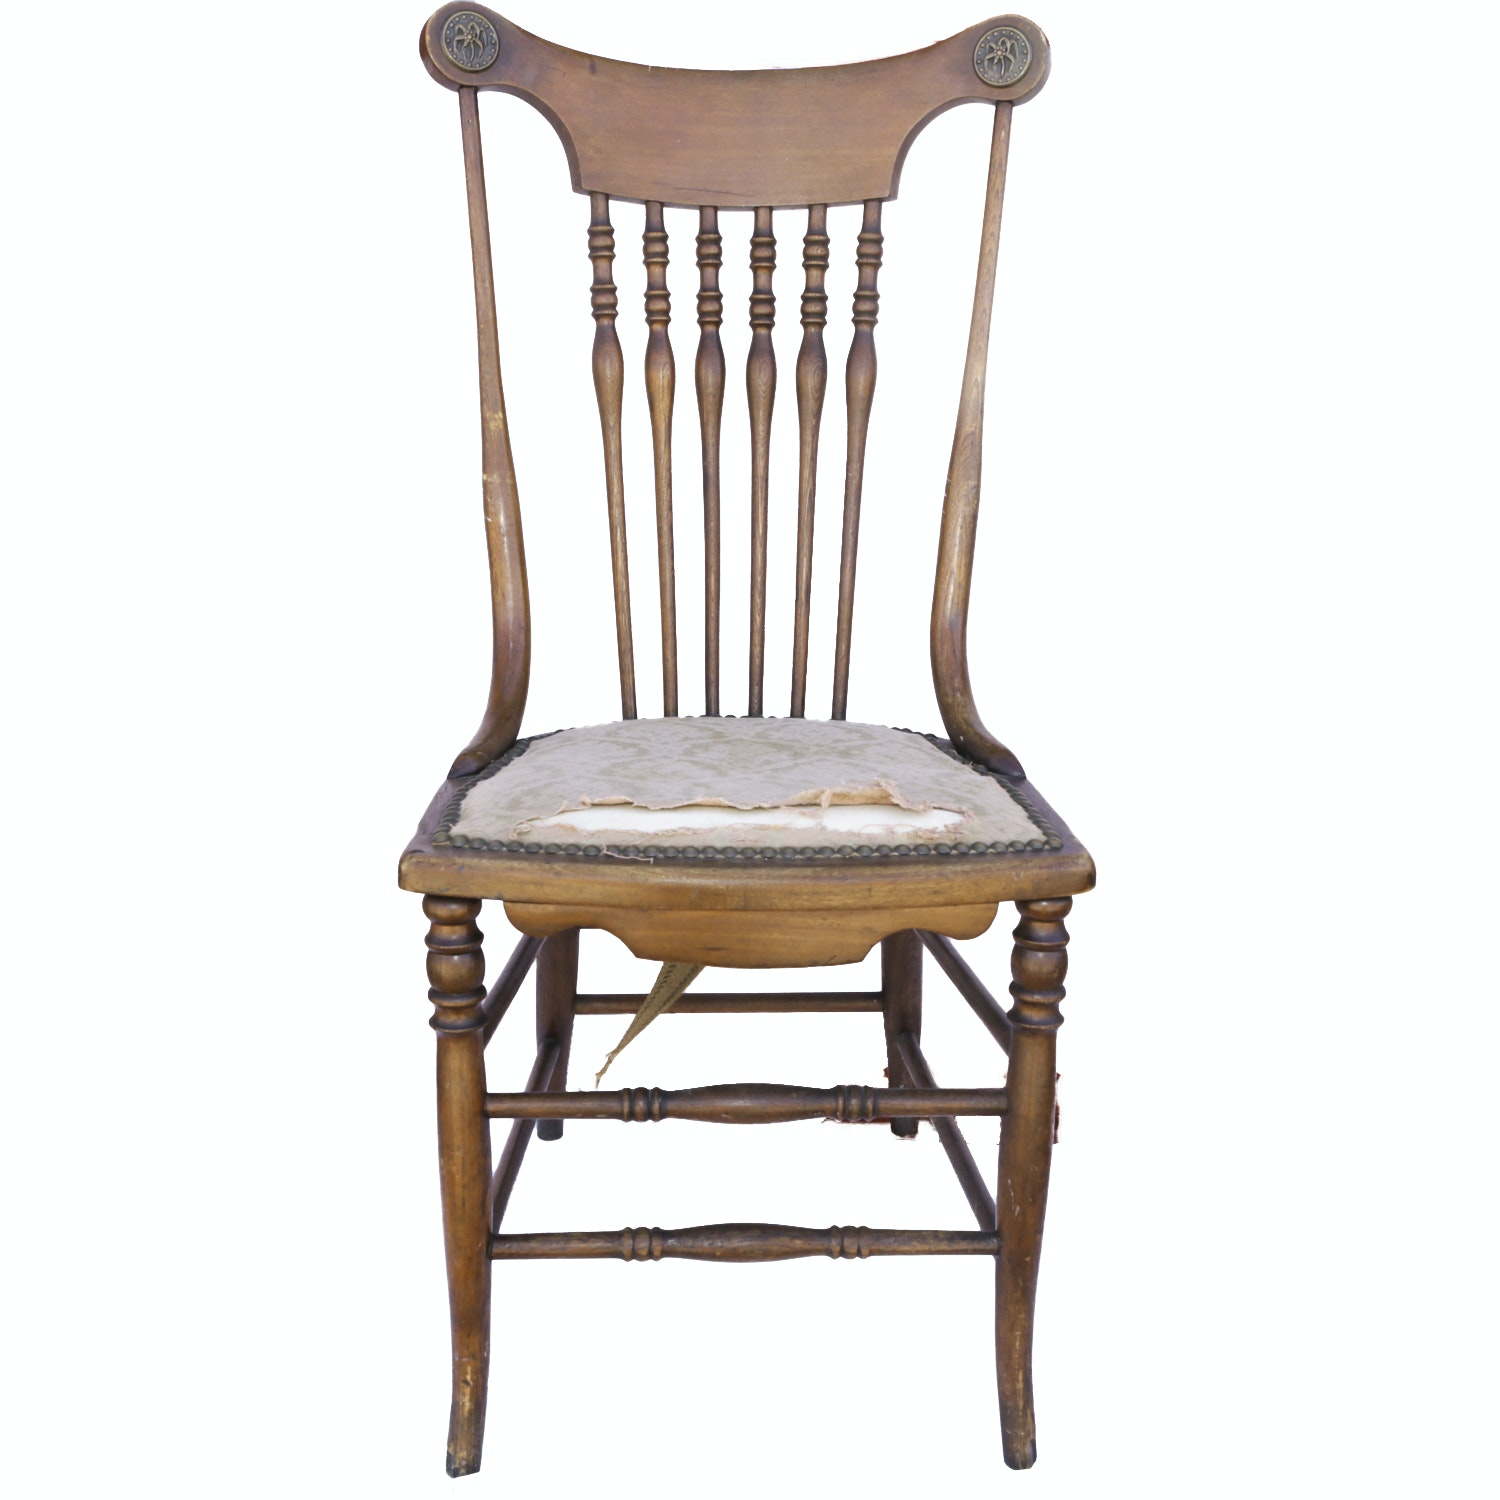 Antique Colonial-Revival Walnut Chair